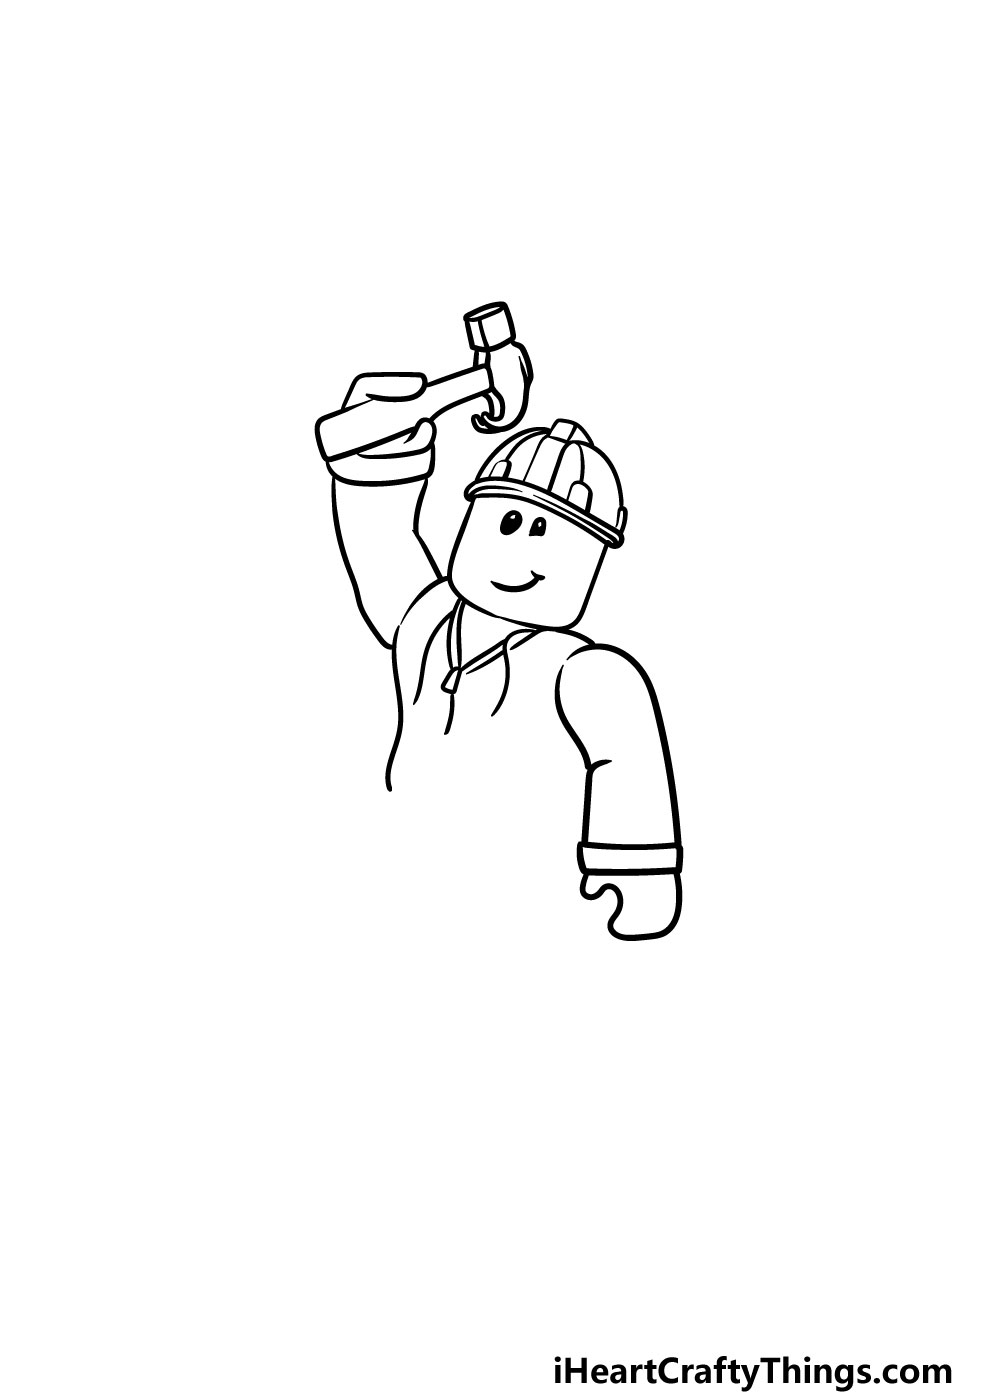 drawing roblox step 3